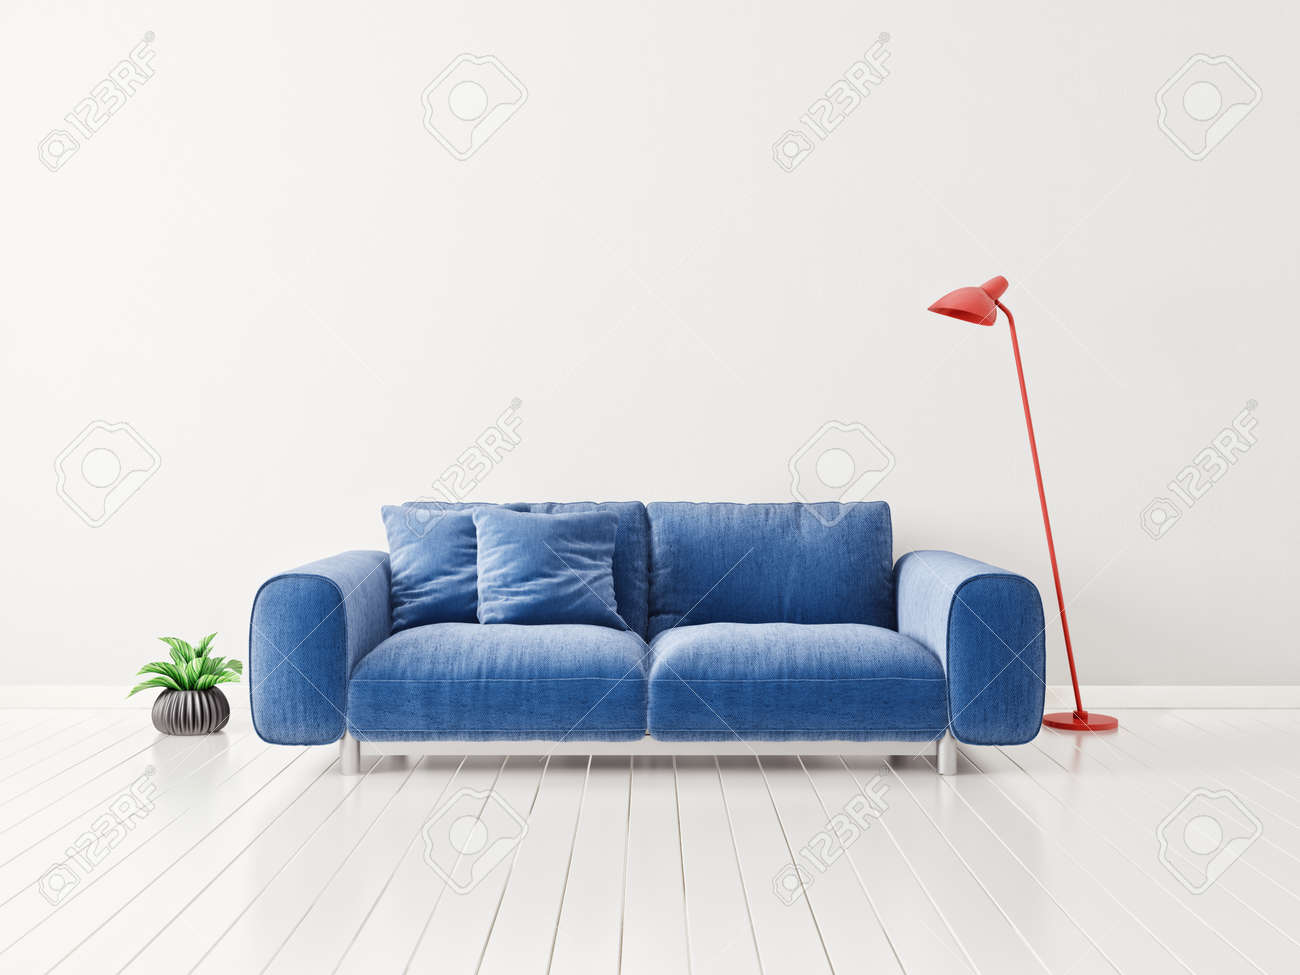 Illustration modern living room with sofa scandinavian interior design furniture 3d illustration